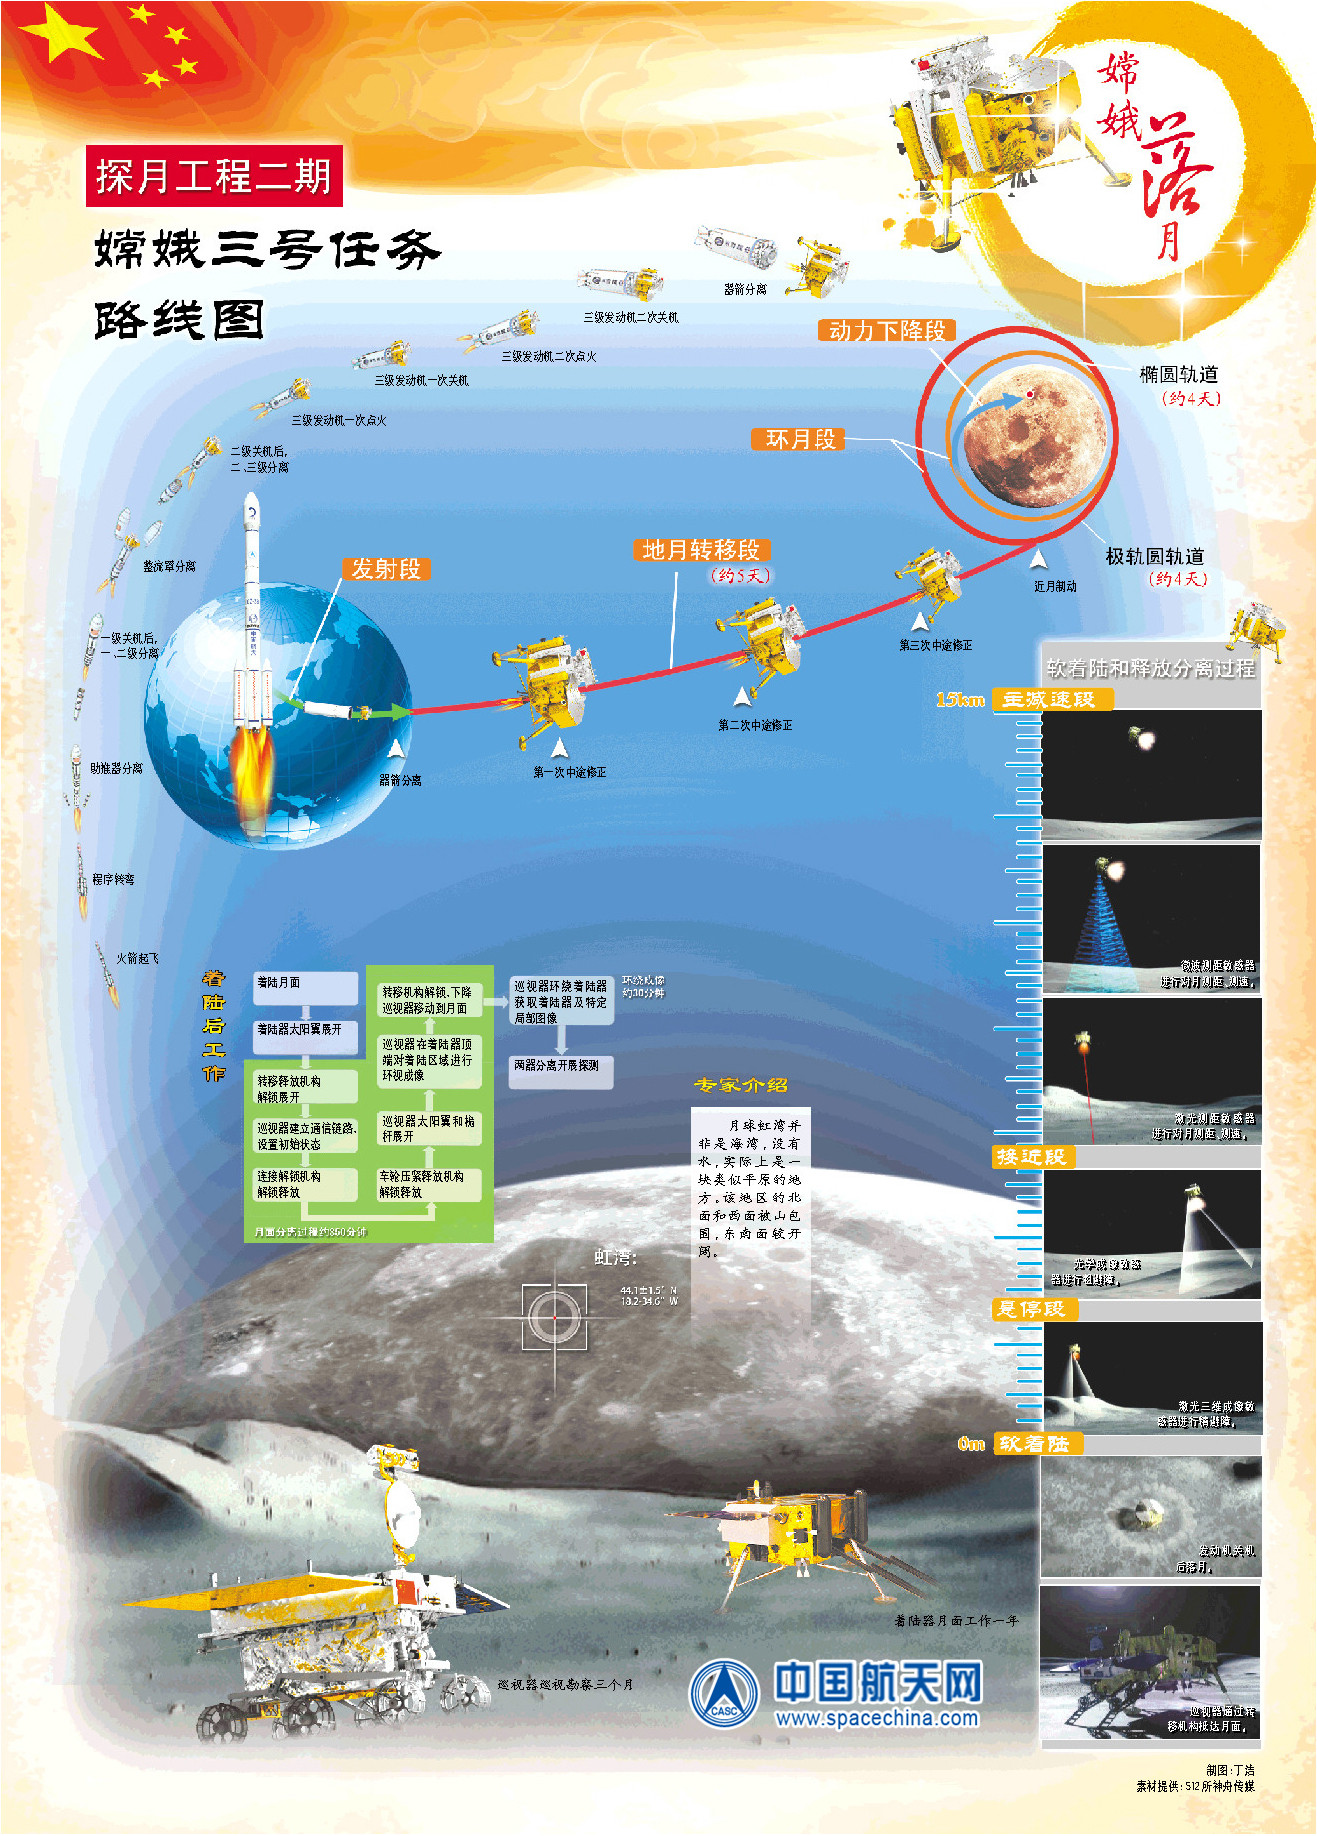 China's 1st Moon Rover Arrives in Lunar Orbit